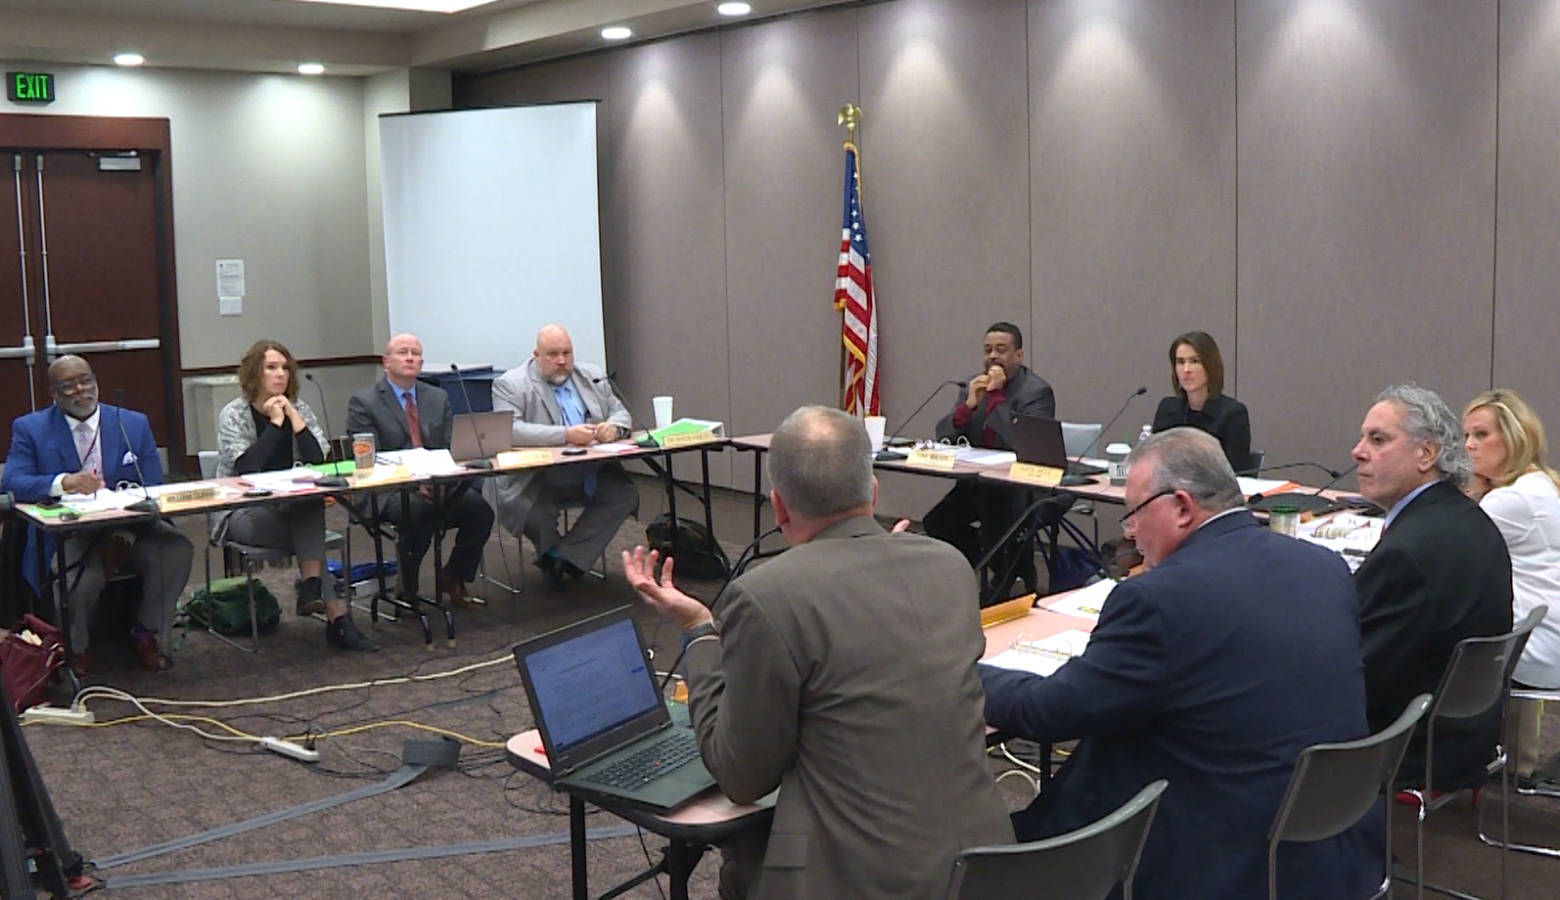 The Indiana Board of Education meeting on Dec. 4, 2019. (Jeanie Lindsay/IPB News)